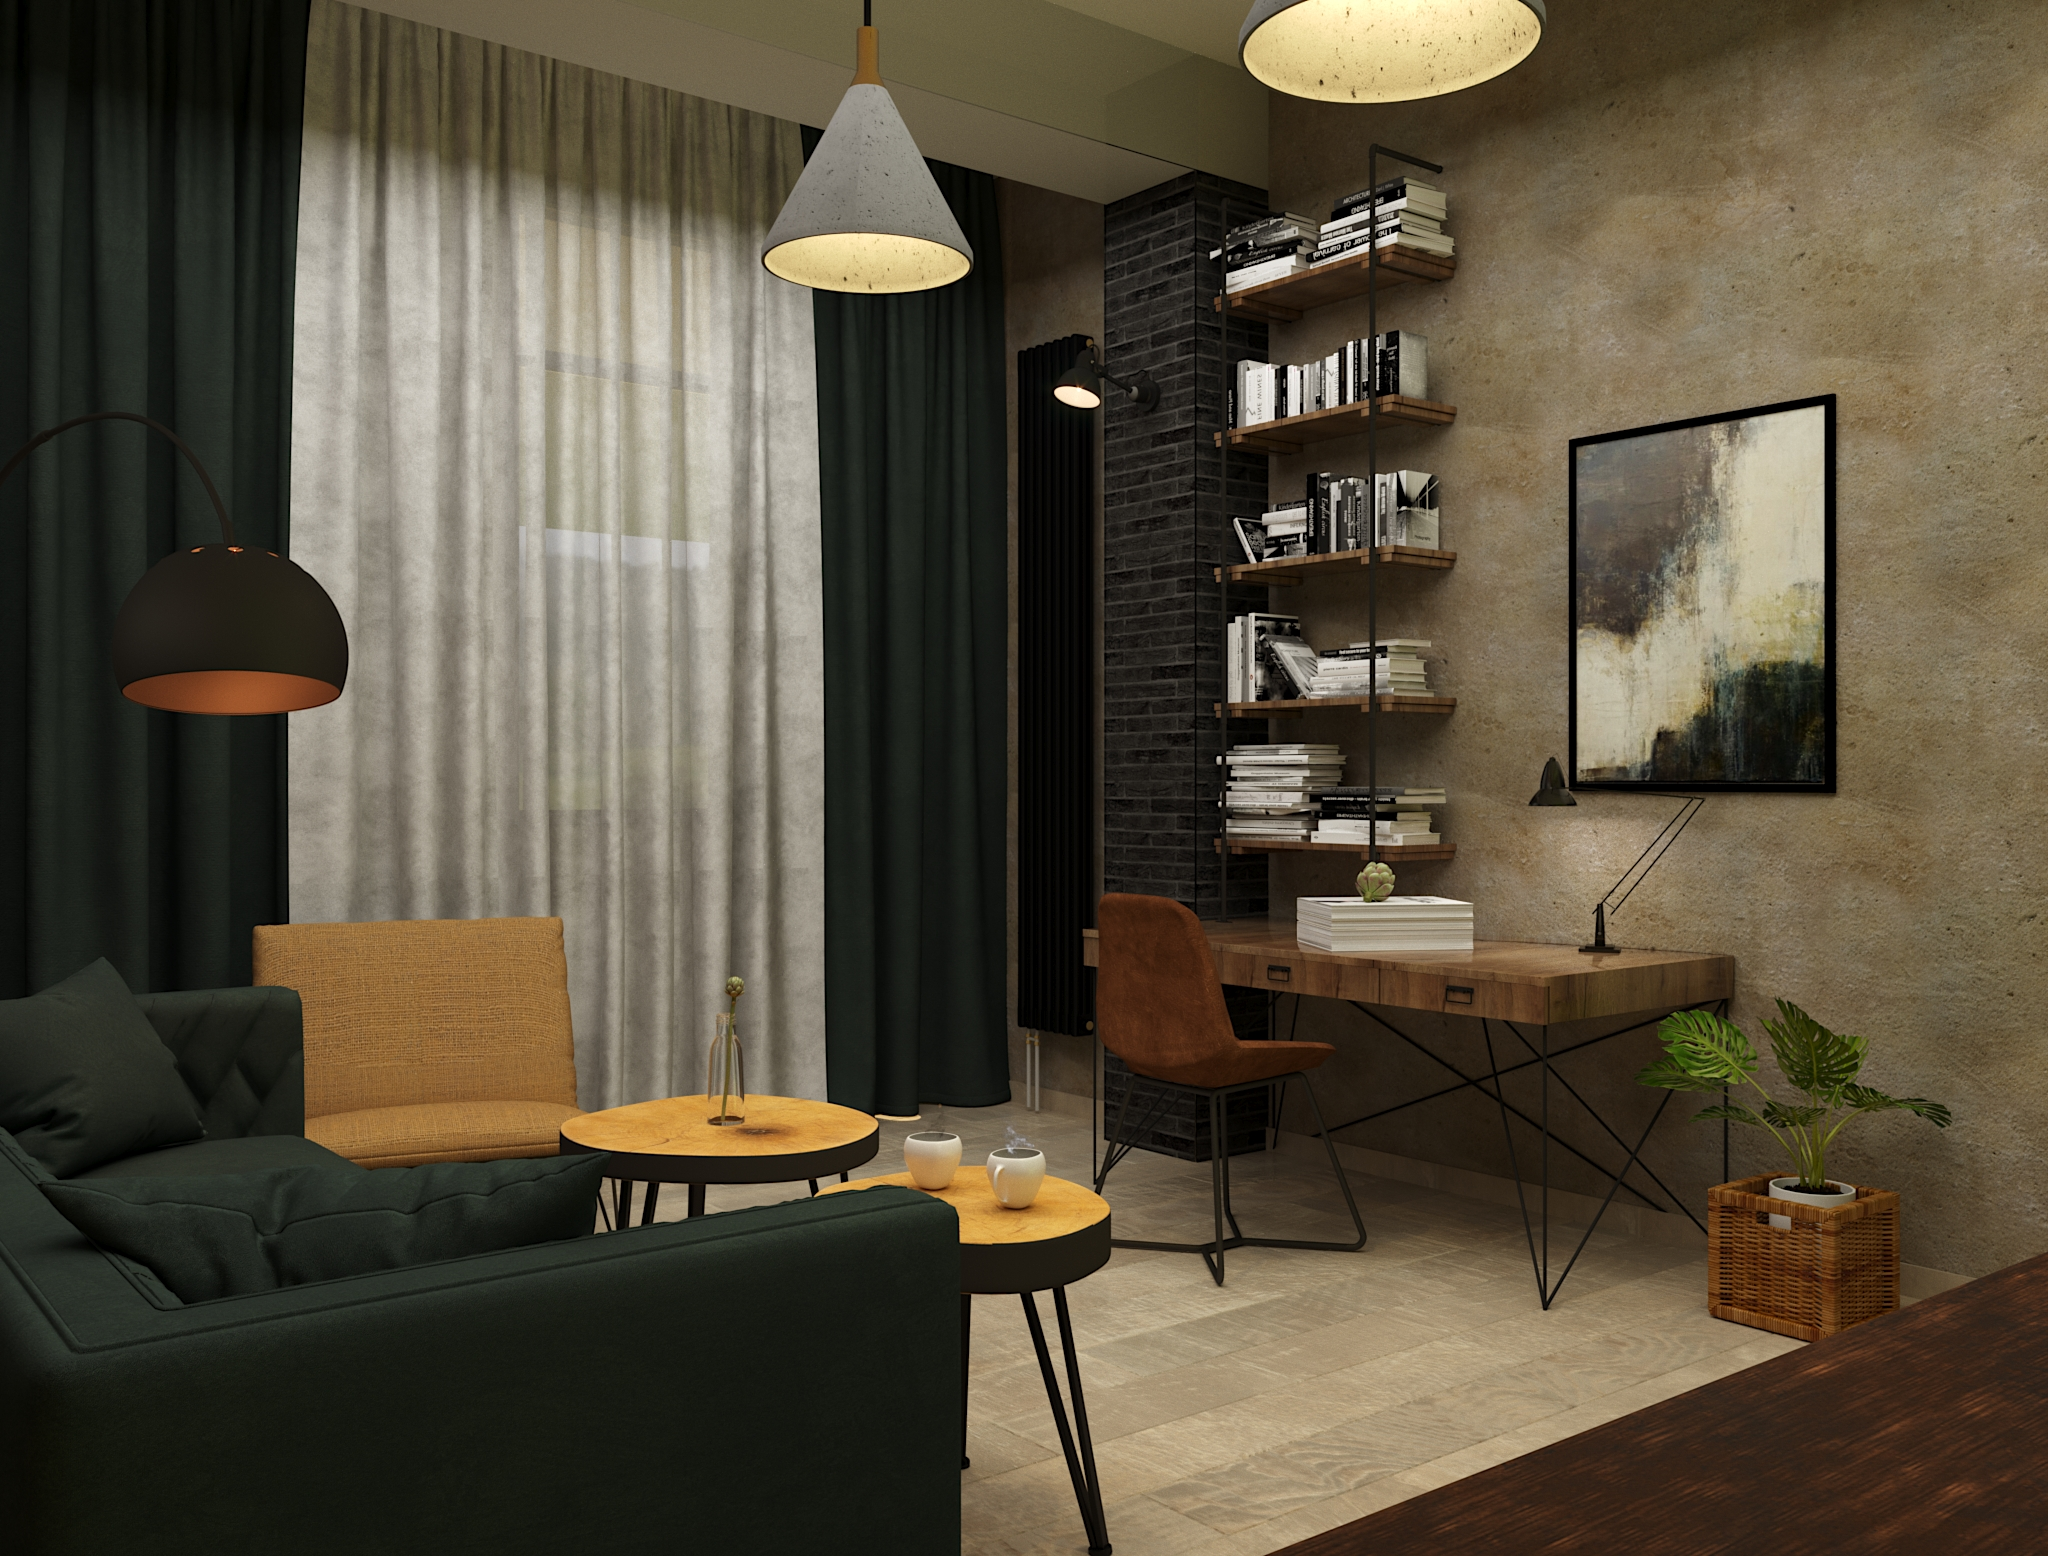 Lisi – Interior Design